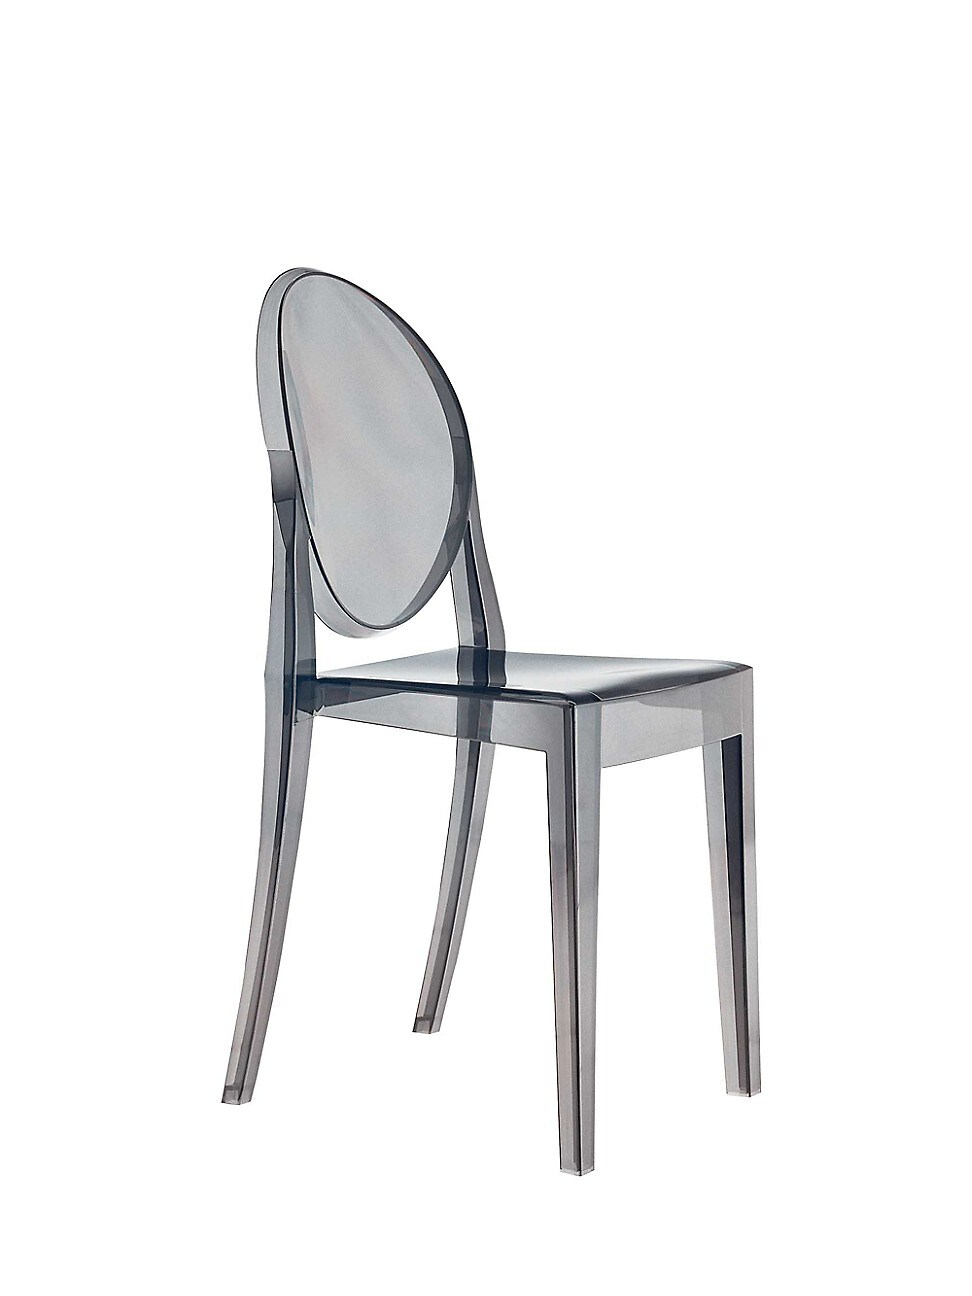 Chic, coveted chairs for the classic modernist. Designed by Philippe Starck. Scratch- and weather-resistant Durable and stable Stackable, up to 7 chairs Overall: 36\\\